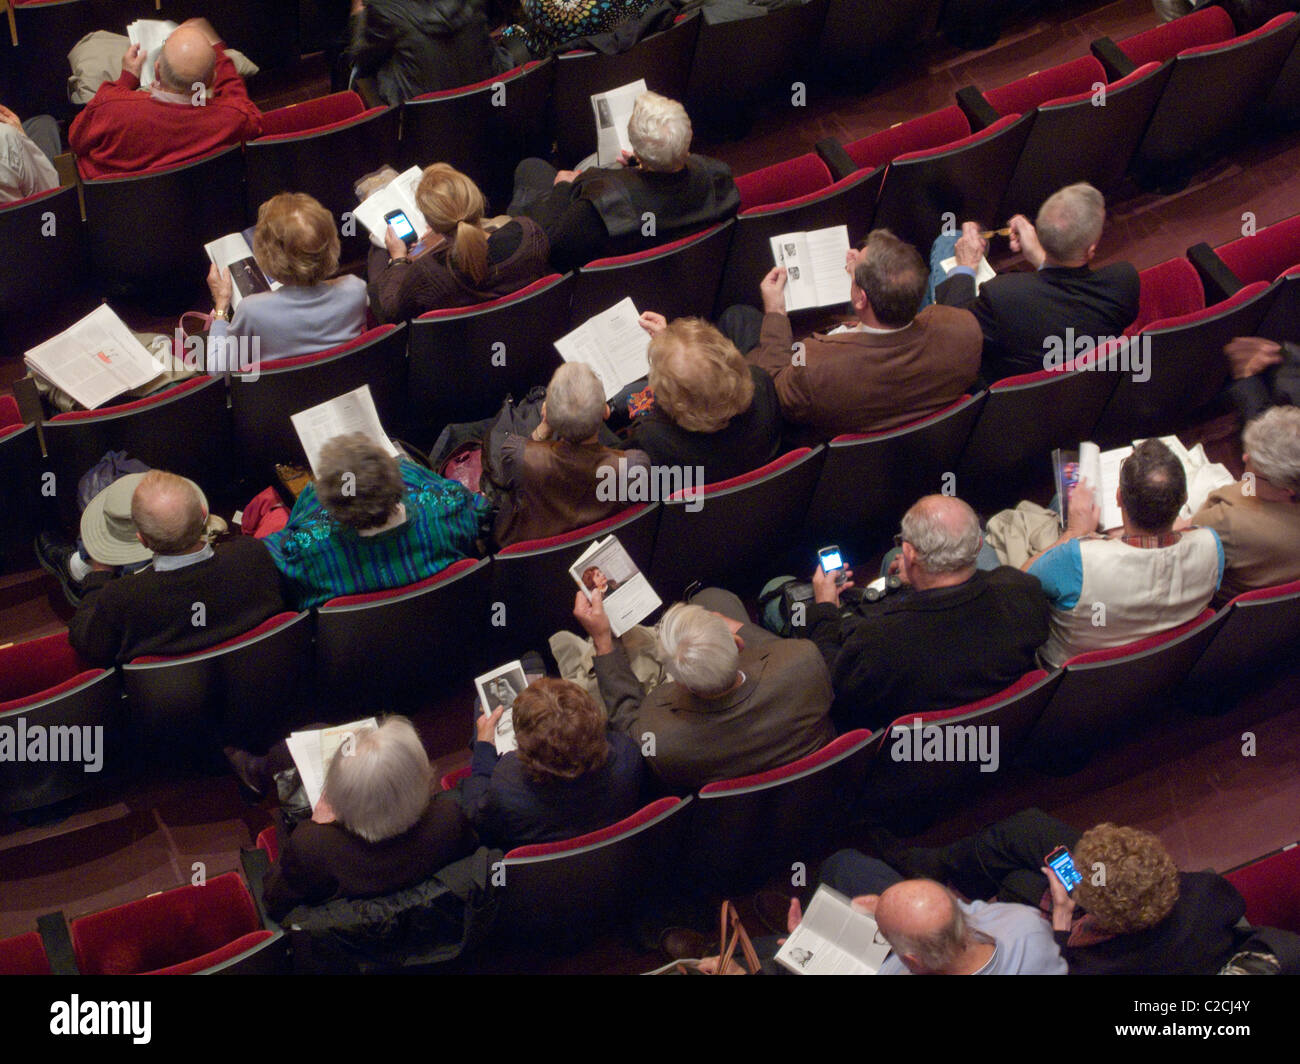 Waiting for the ballet to start - Stock Image